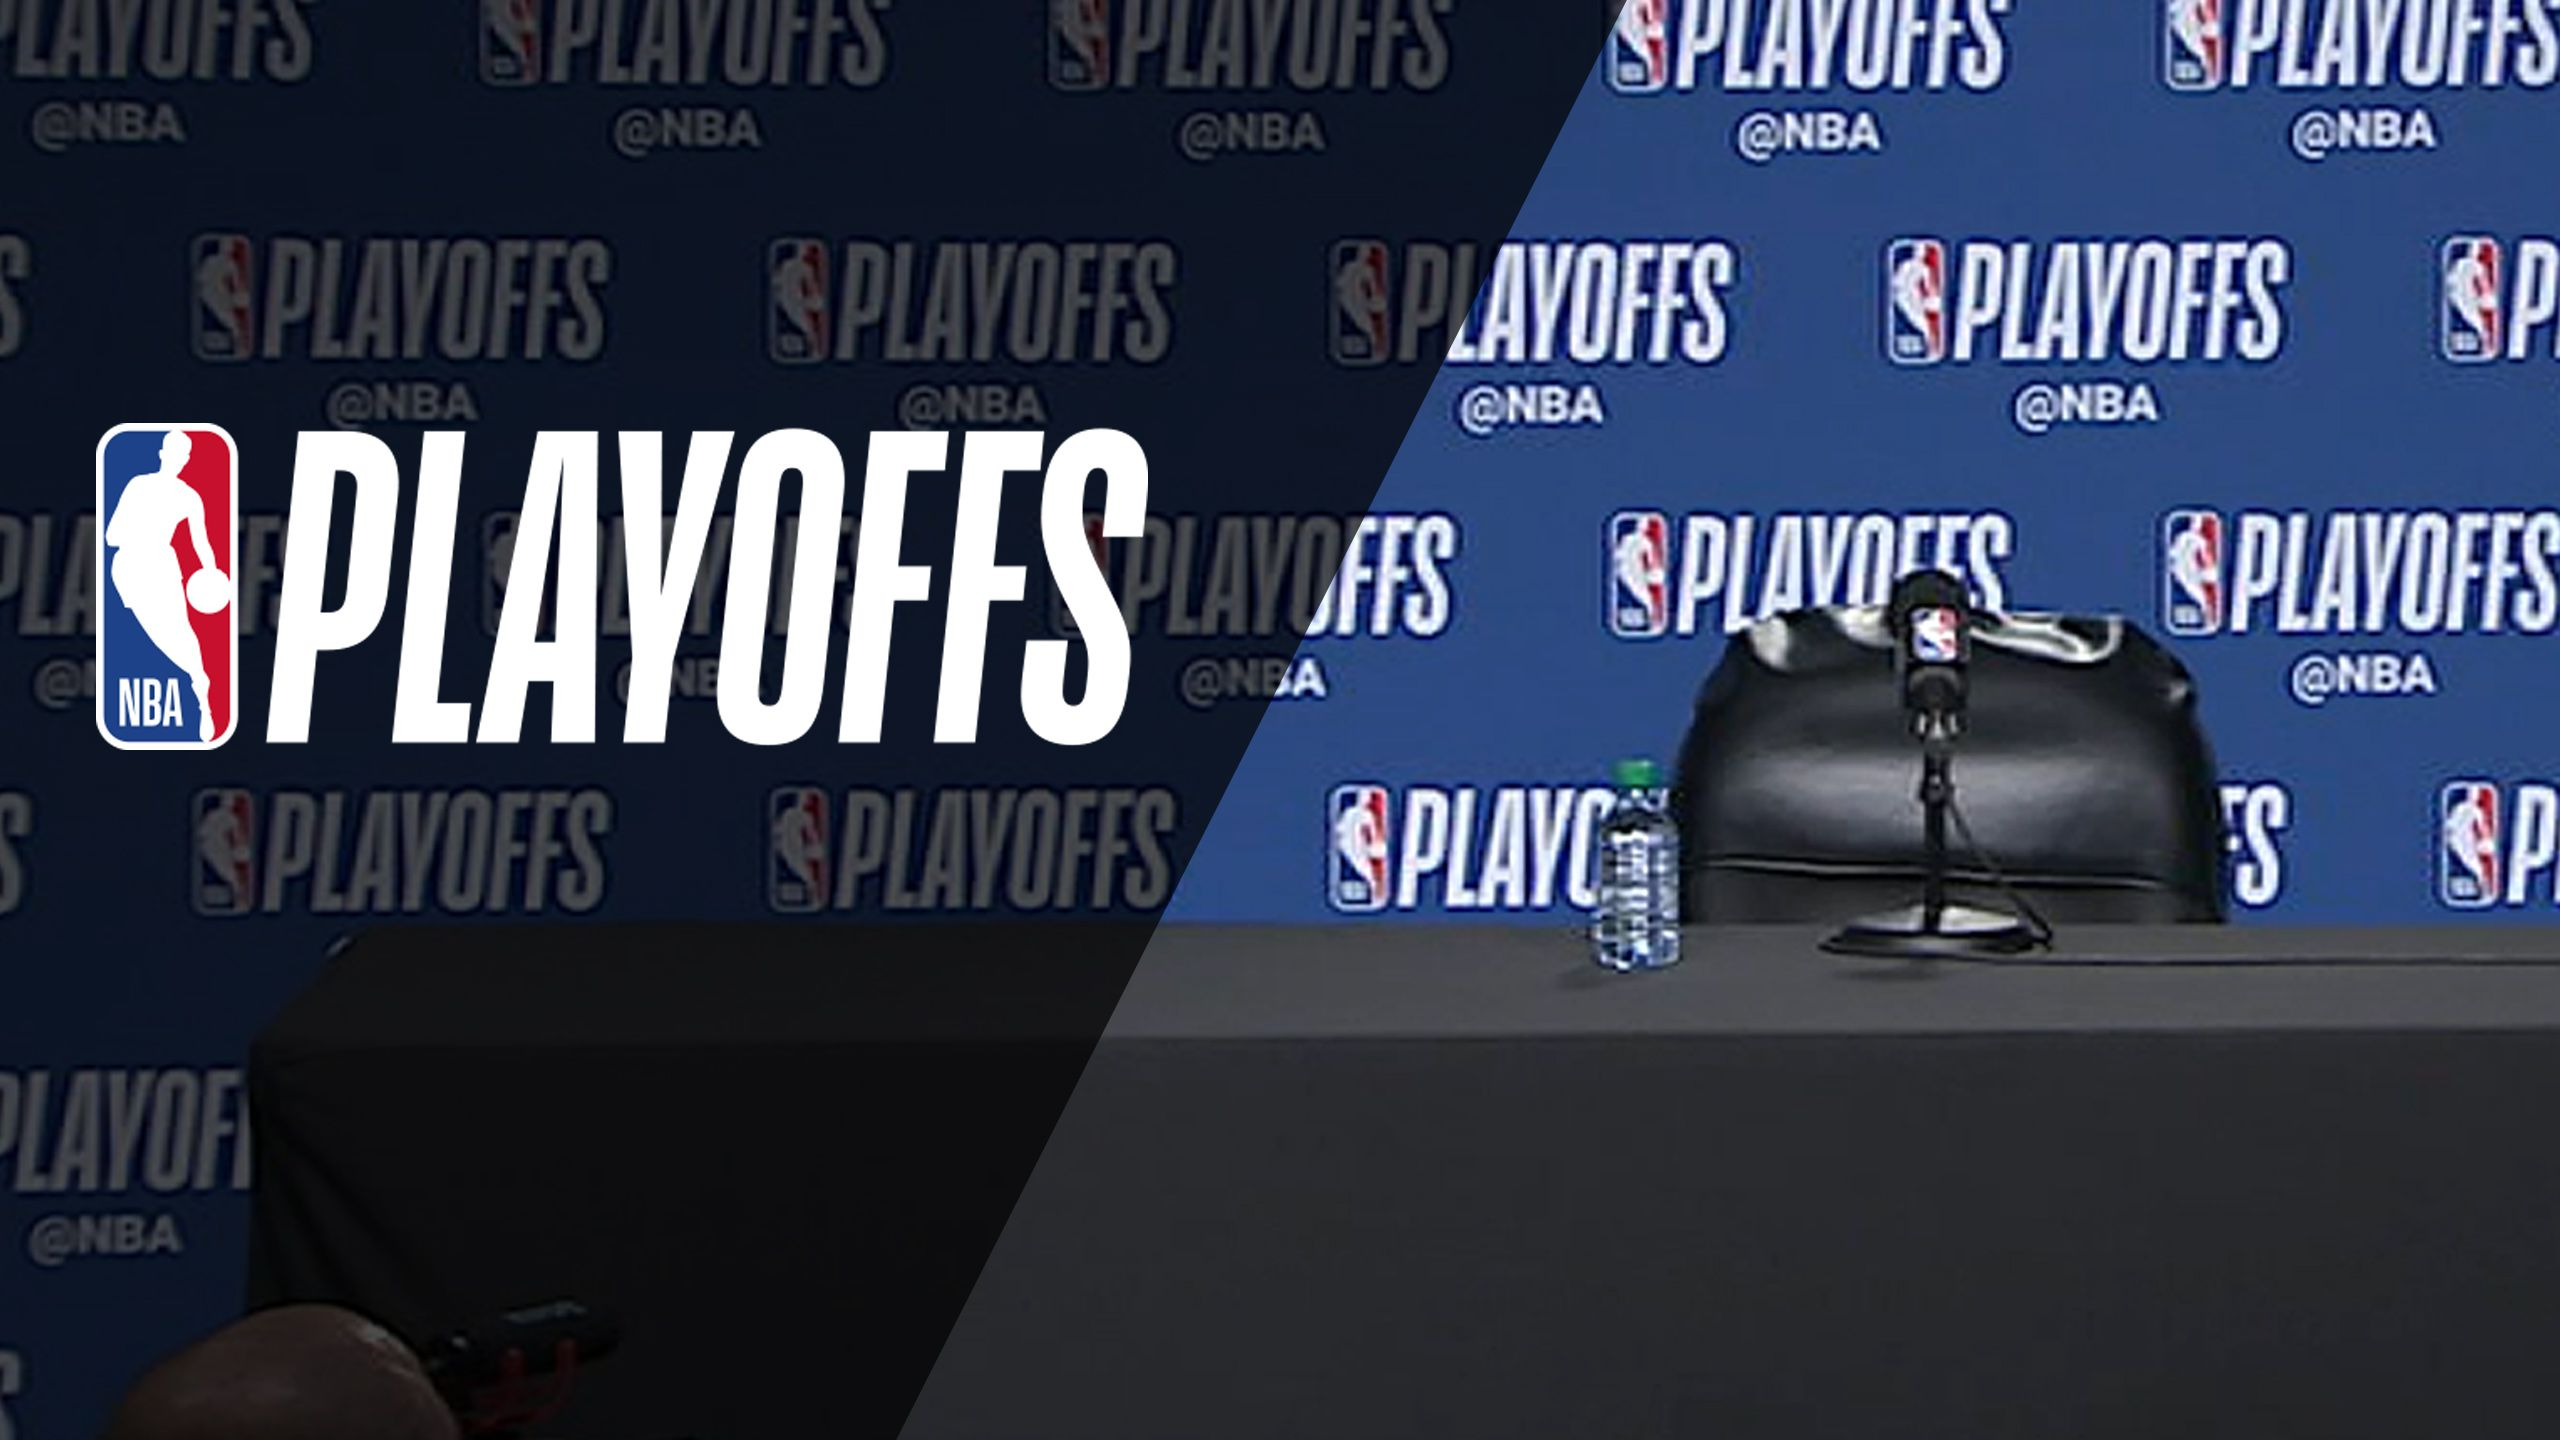 NBA Post Game Press Conferences